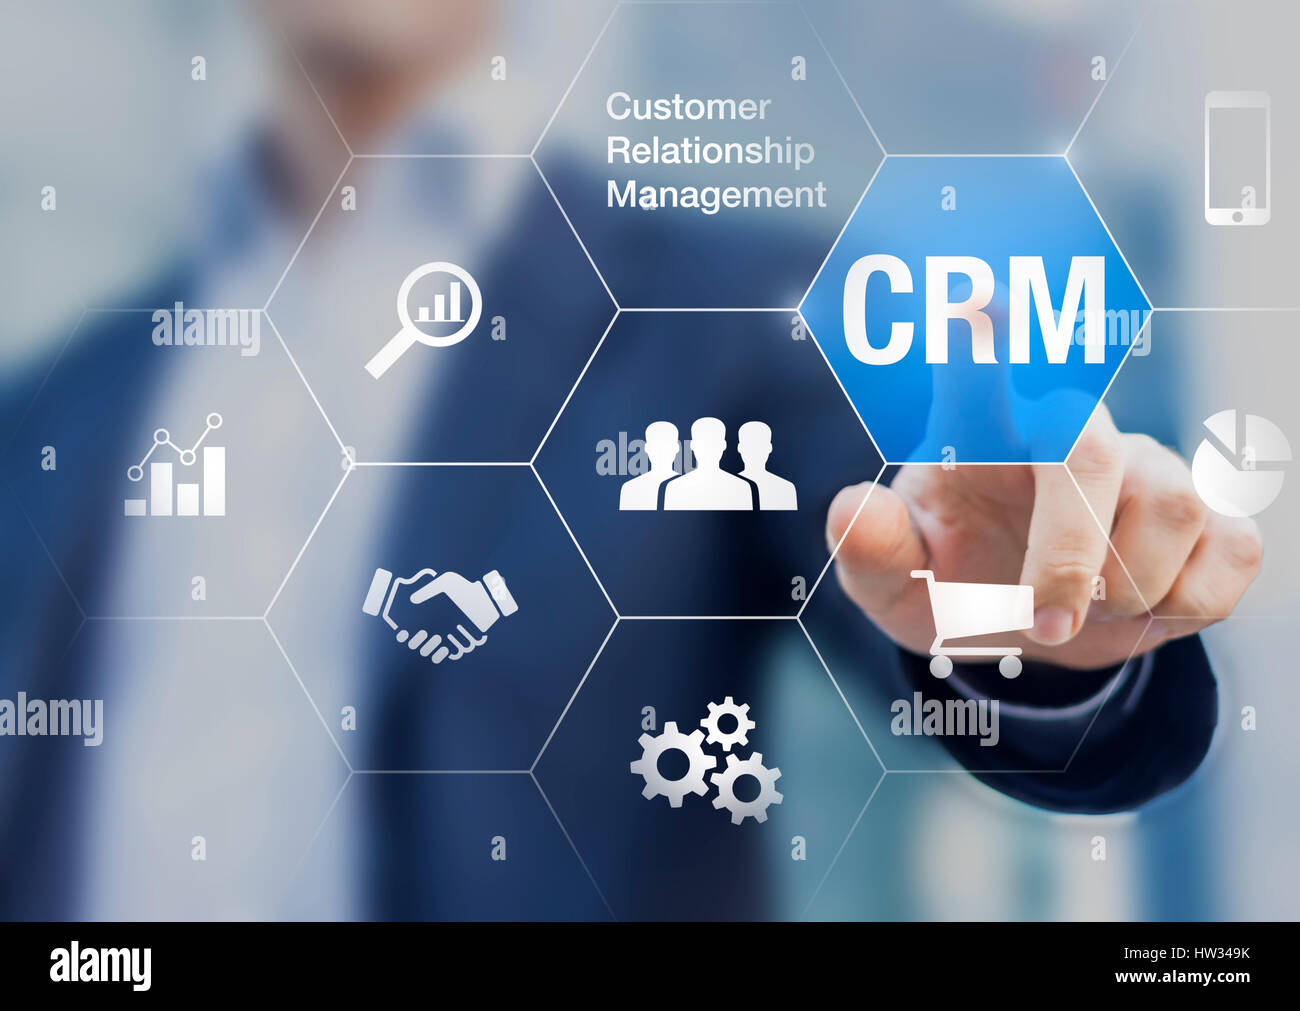 Customer relationship management concept with businessman touching button in background, communication, marketing - Stock Image